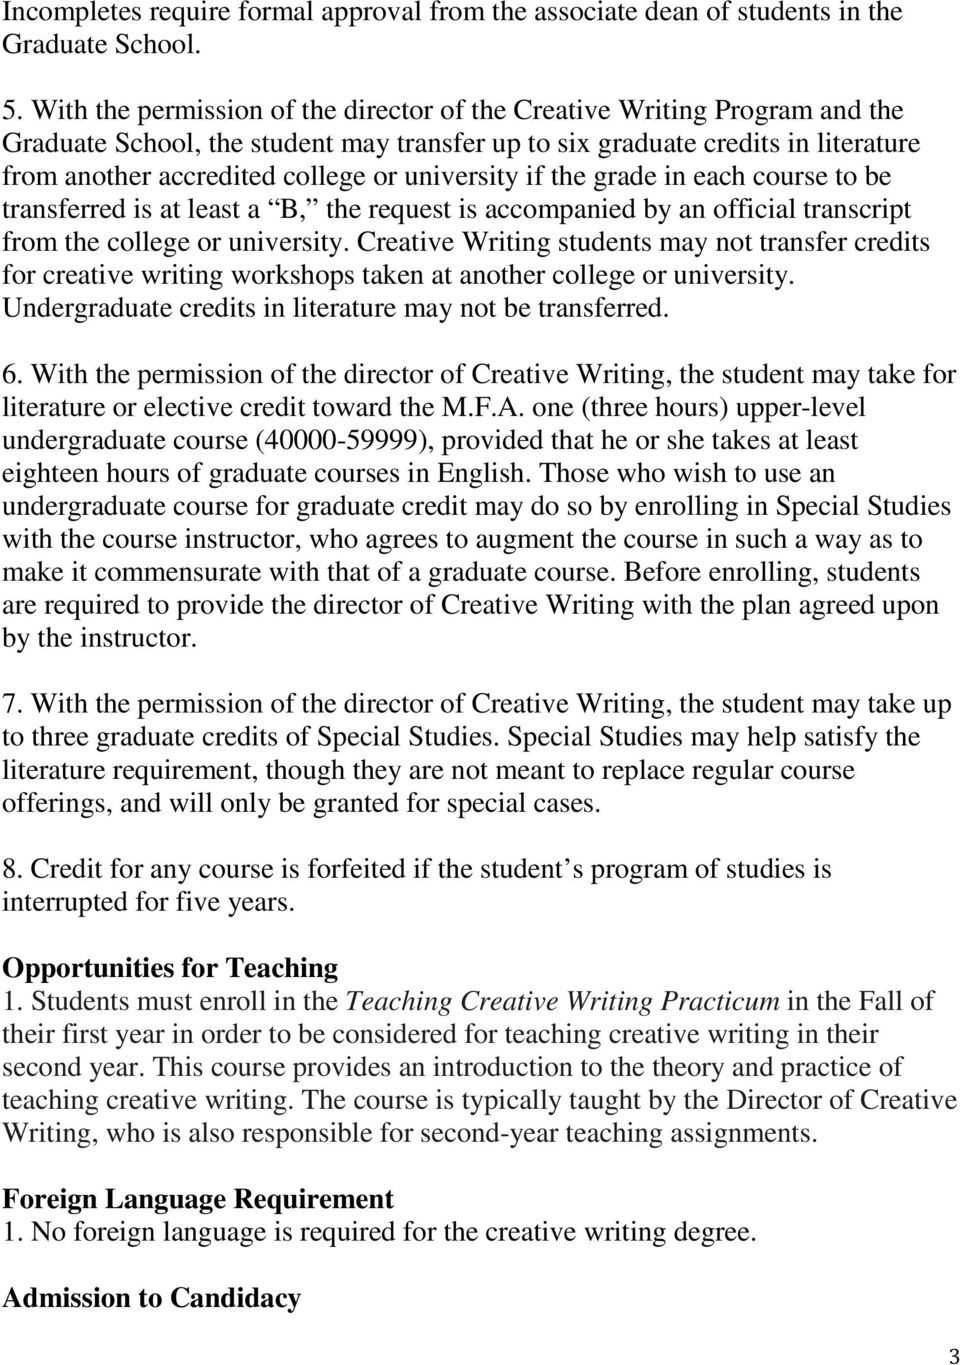 creative writing topics for grade 5 Search by grade level: upper elementary (grades 3-5) clicking on the picture will take you to the prompt eventually however, we're still putting this thing together note that there is a major overlap between mid-level and high school that's because the distinction is often muddled in terms of interest, development, etc.